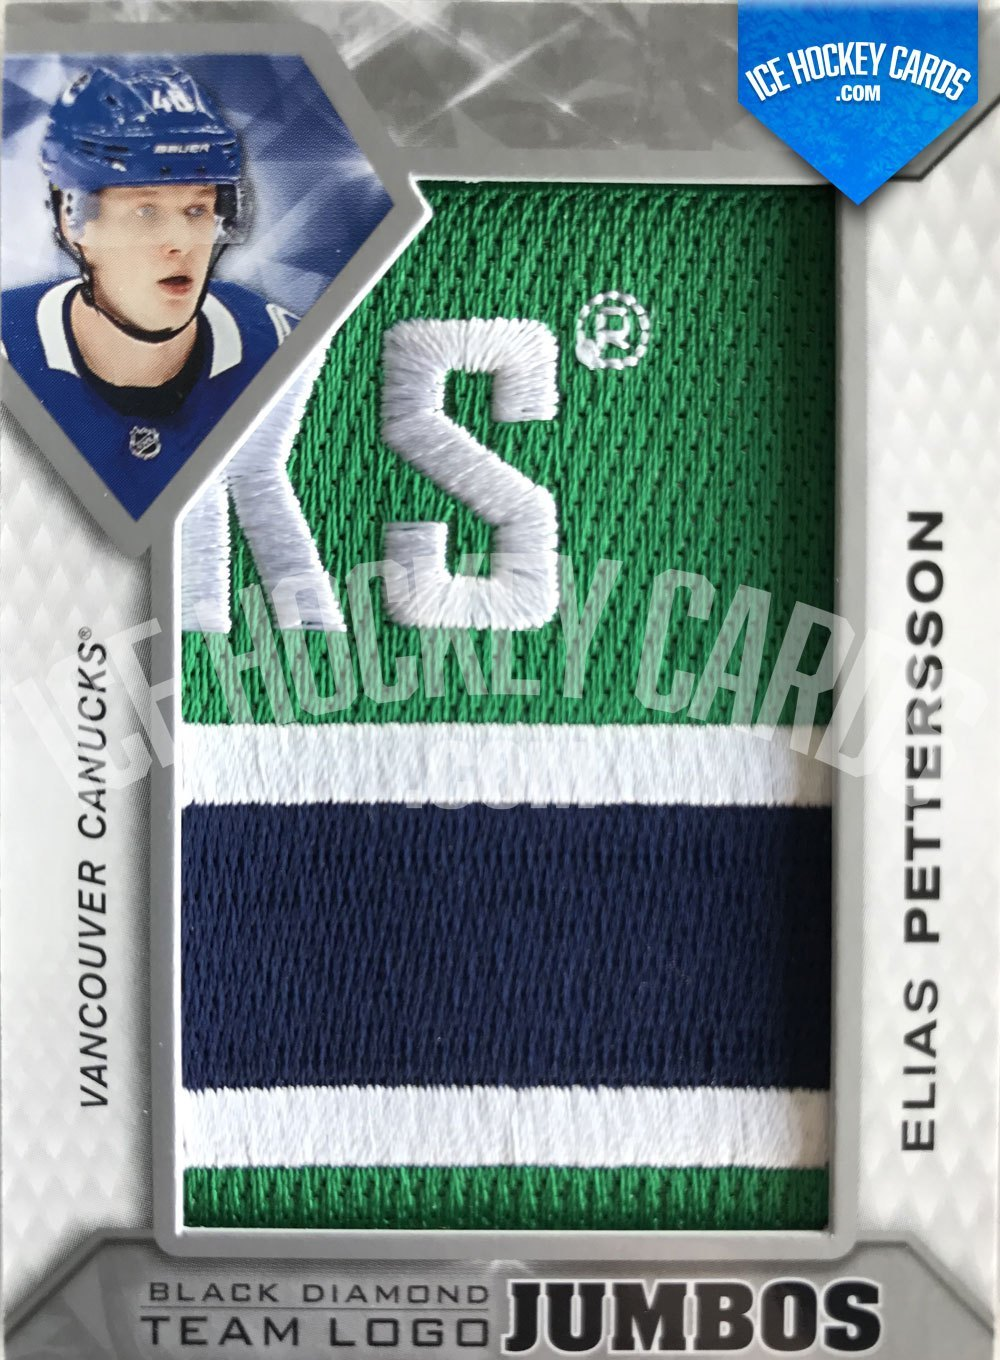 Upper Deck - Black Diamond 19-20 - Elias Pettersson Team Logo Jumbos